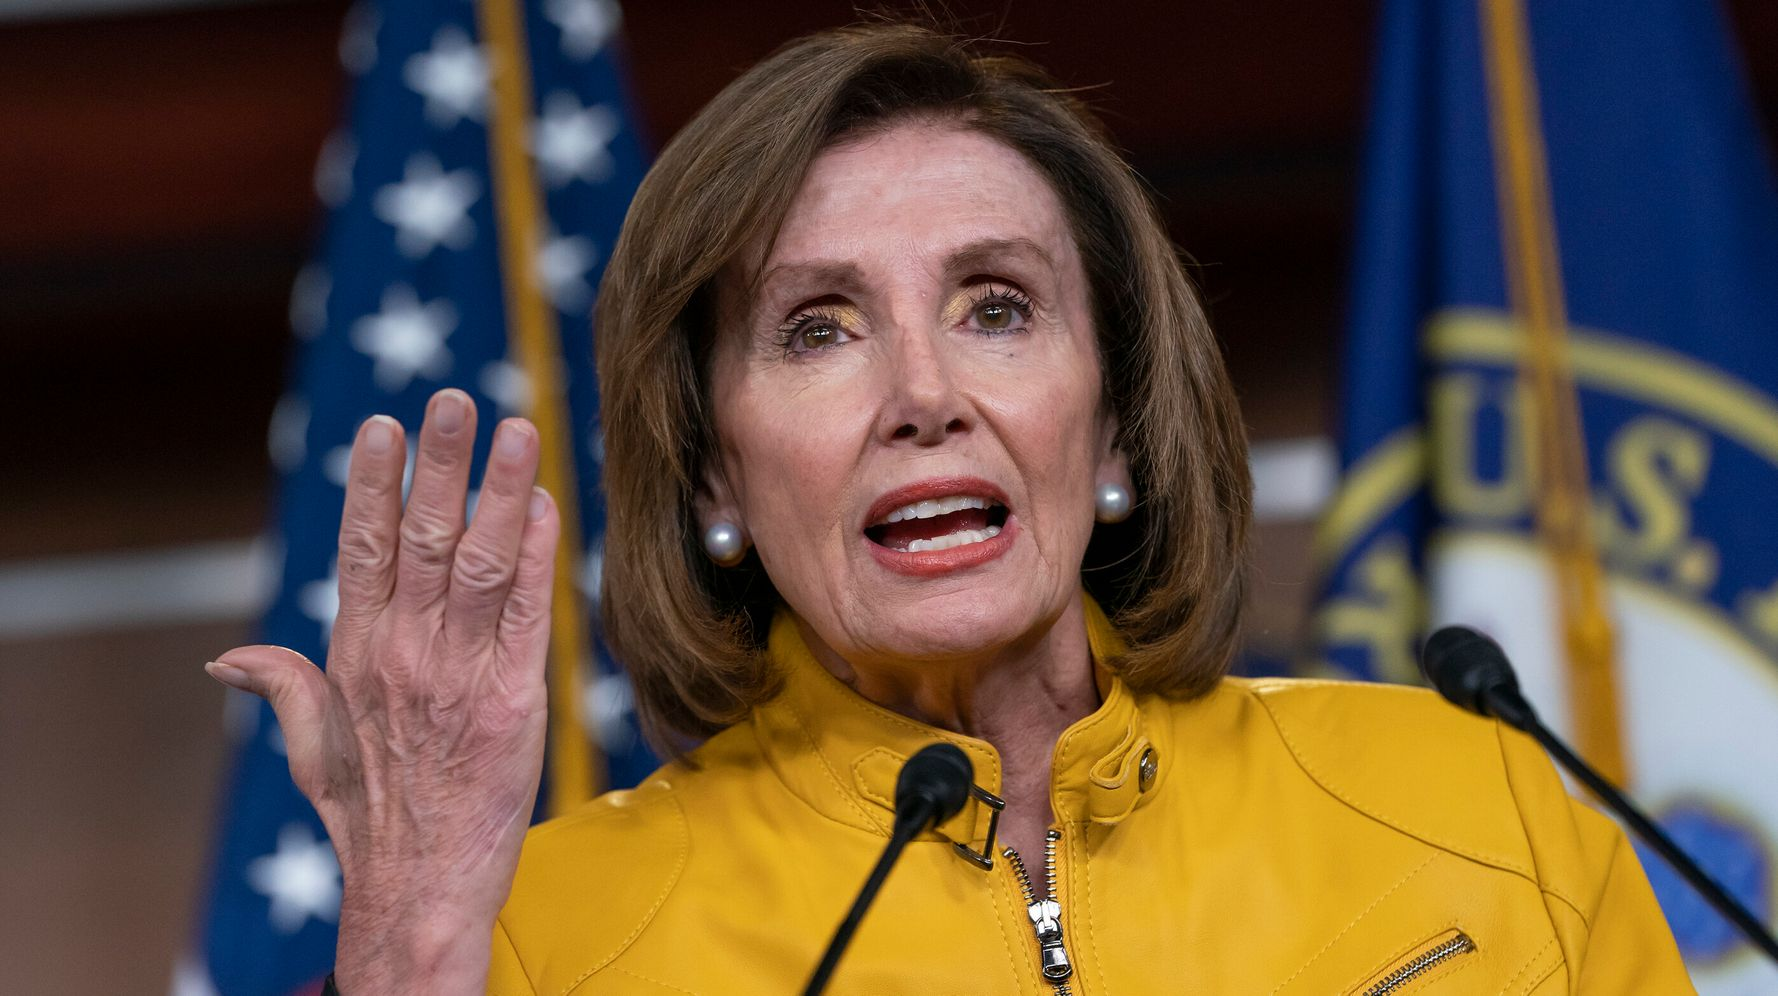 Westlake Legal Group 5d4d62de240000a945937cd6 Pelosi Urges Trump To Bring Senate Back From Vacation To Pass Gun Reforms